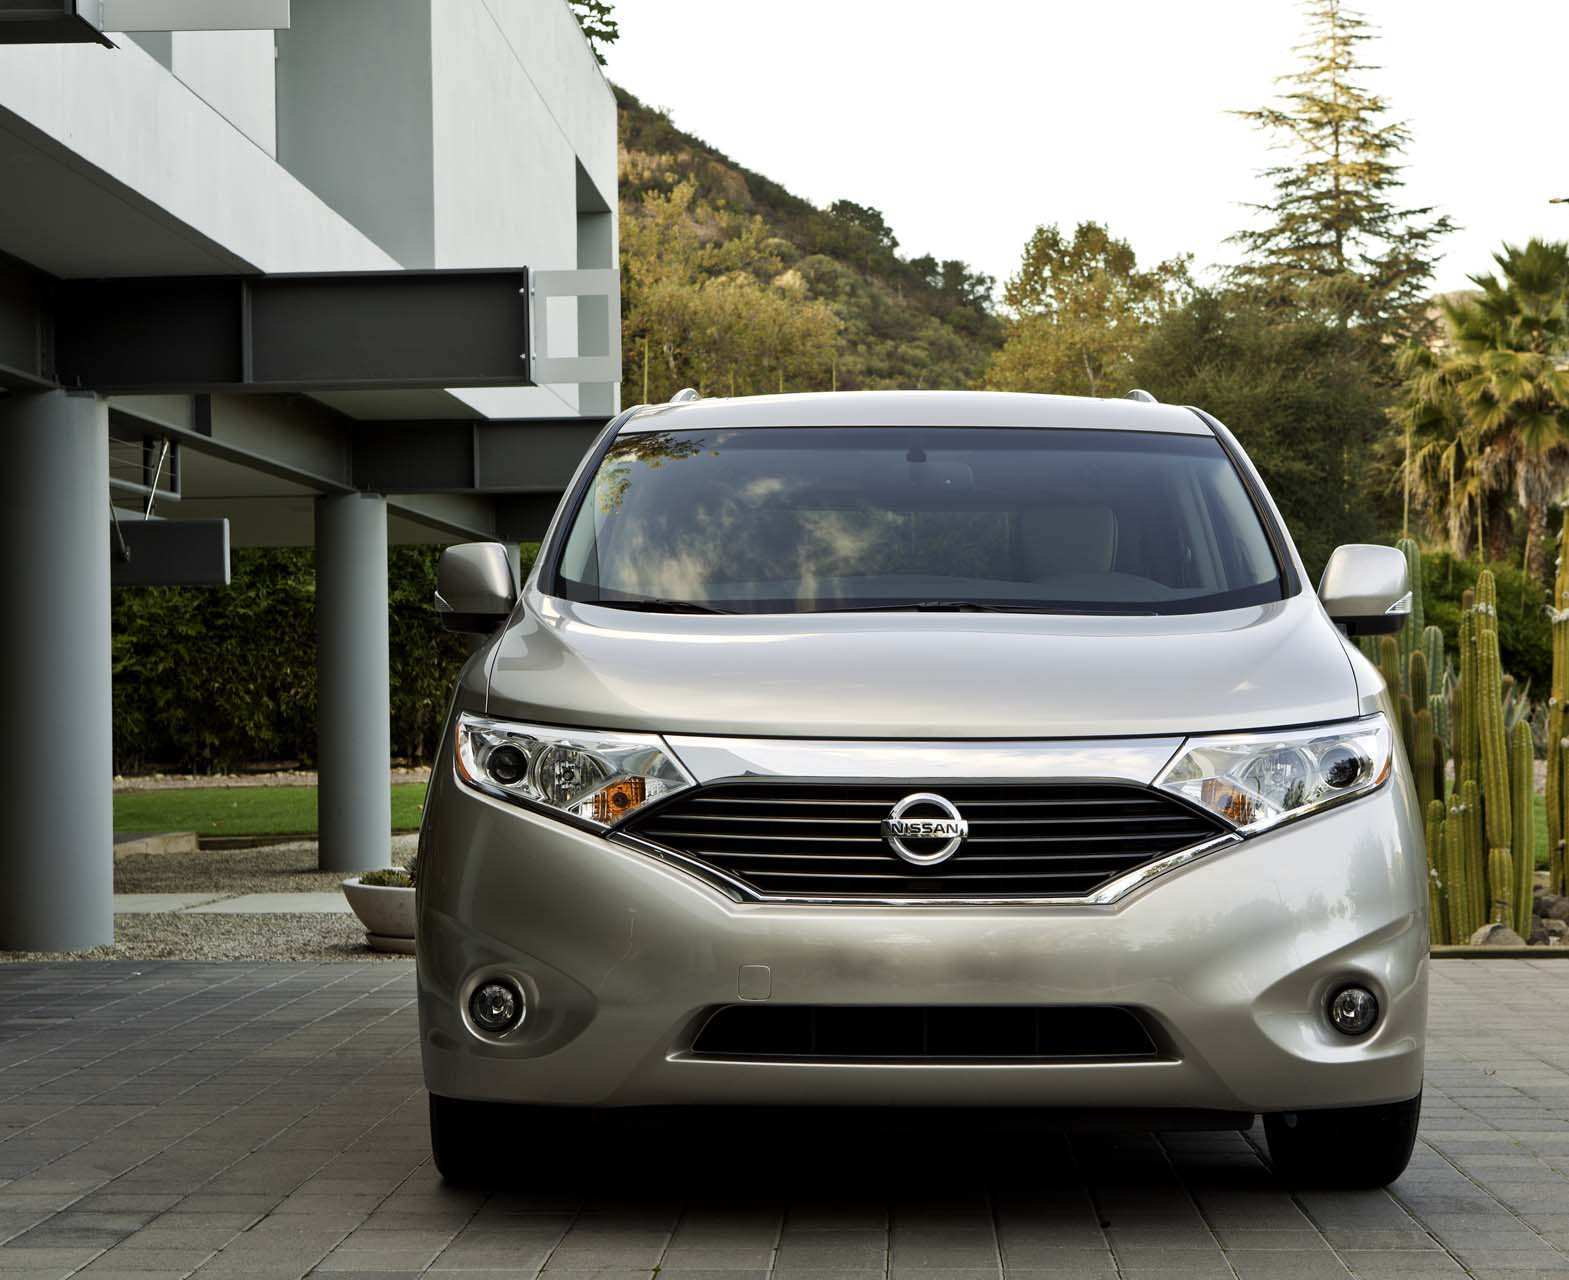 90 The New Nissan Quest 2019 Exterior Specs for New Nissan Quest 2019 Exterior